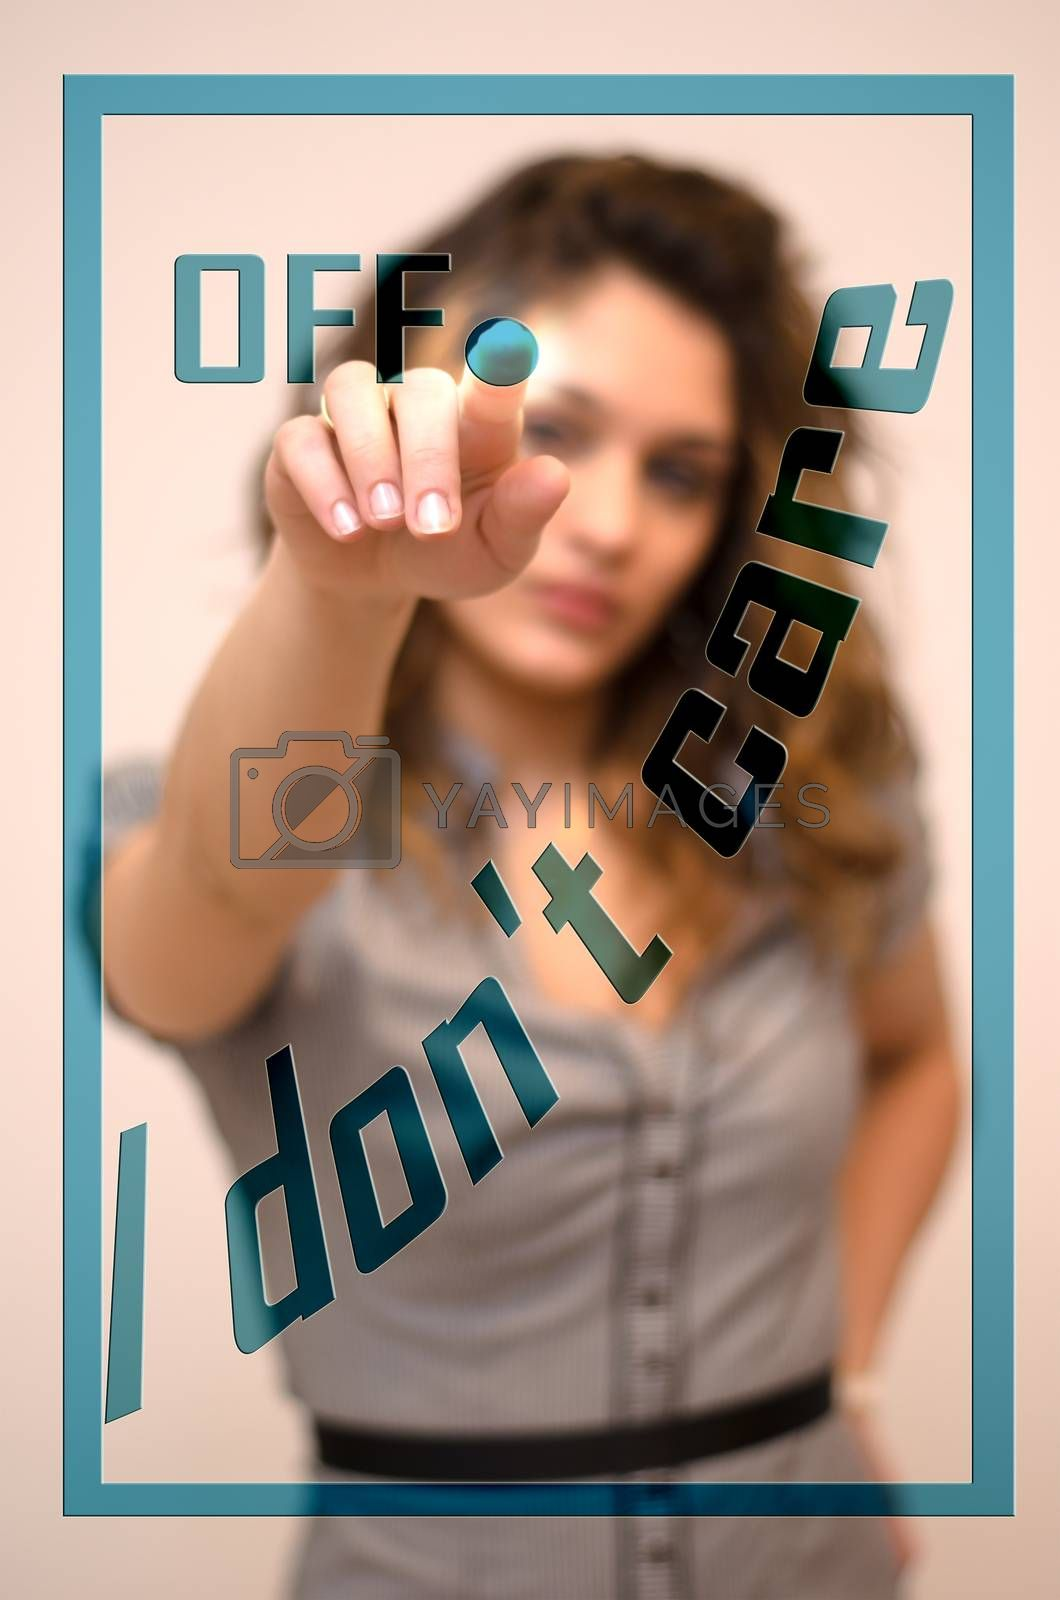 Royalty free image of woman turning off I don't care on panel by vepar5